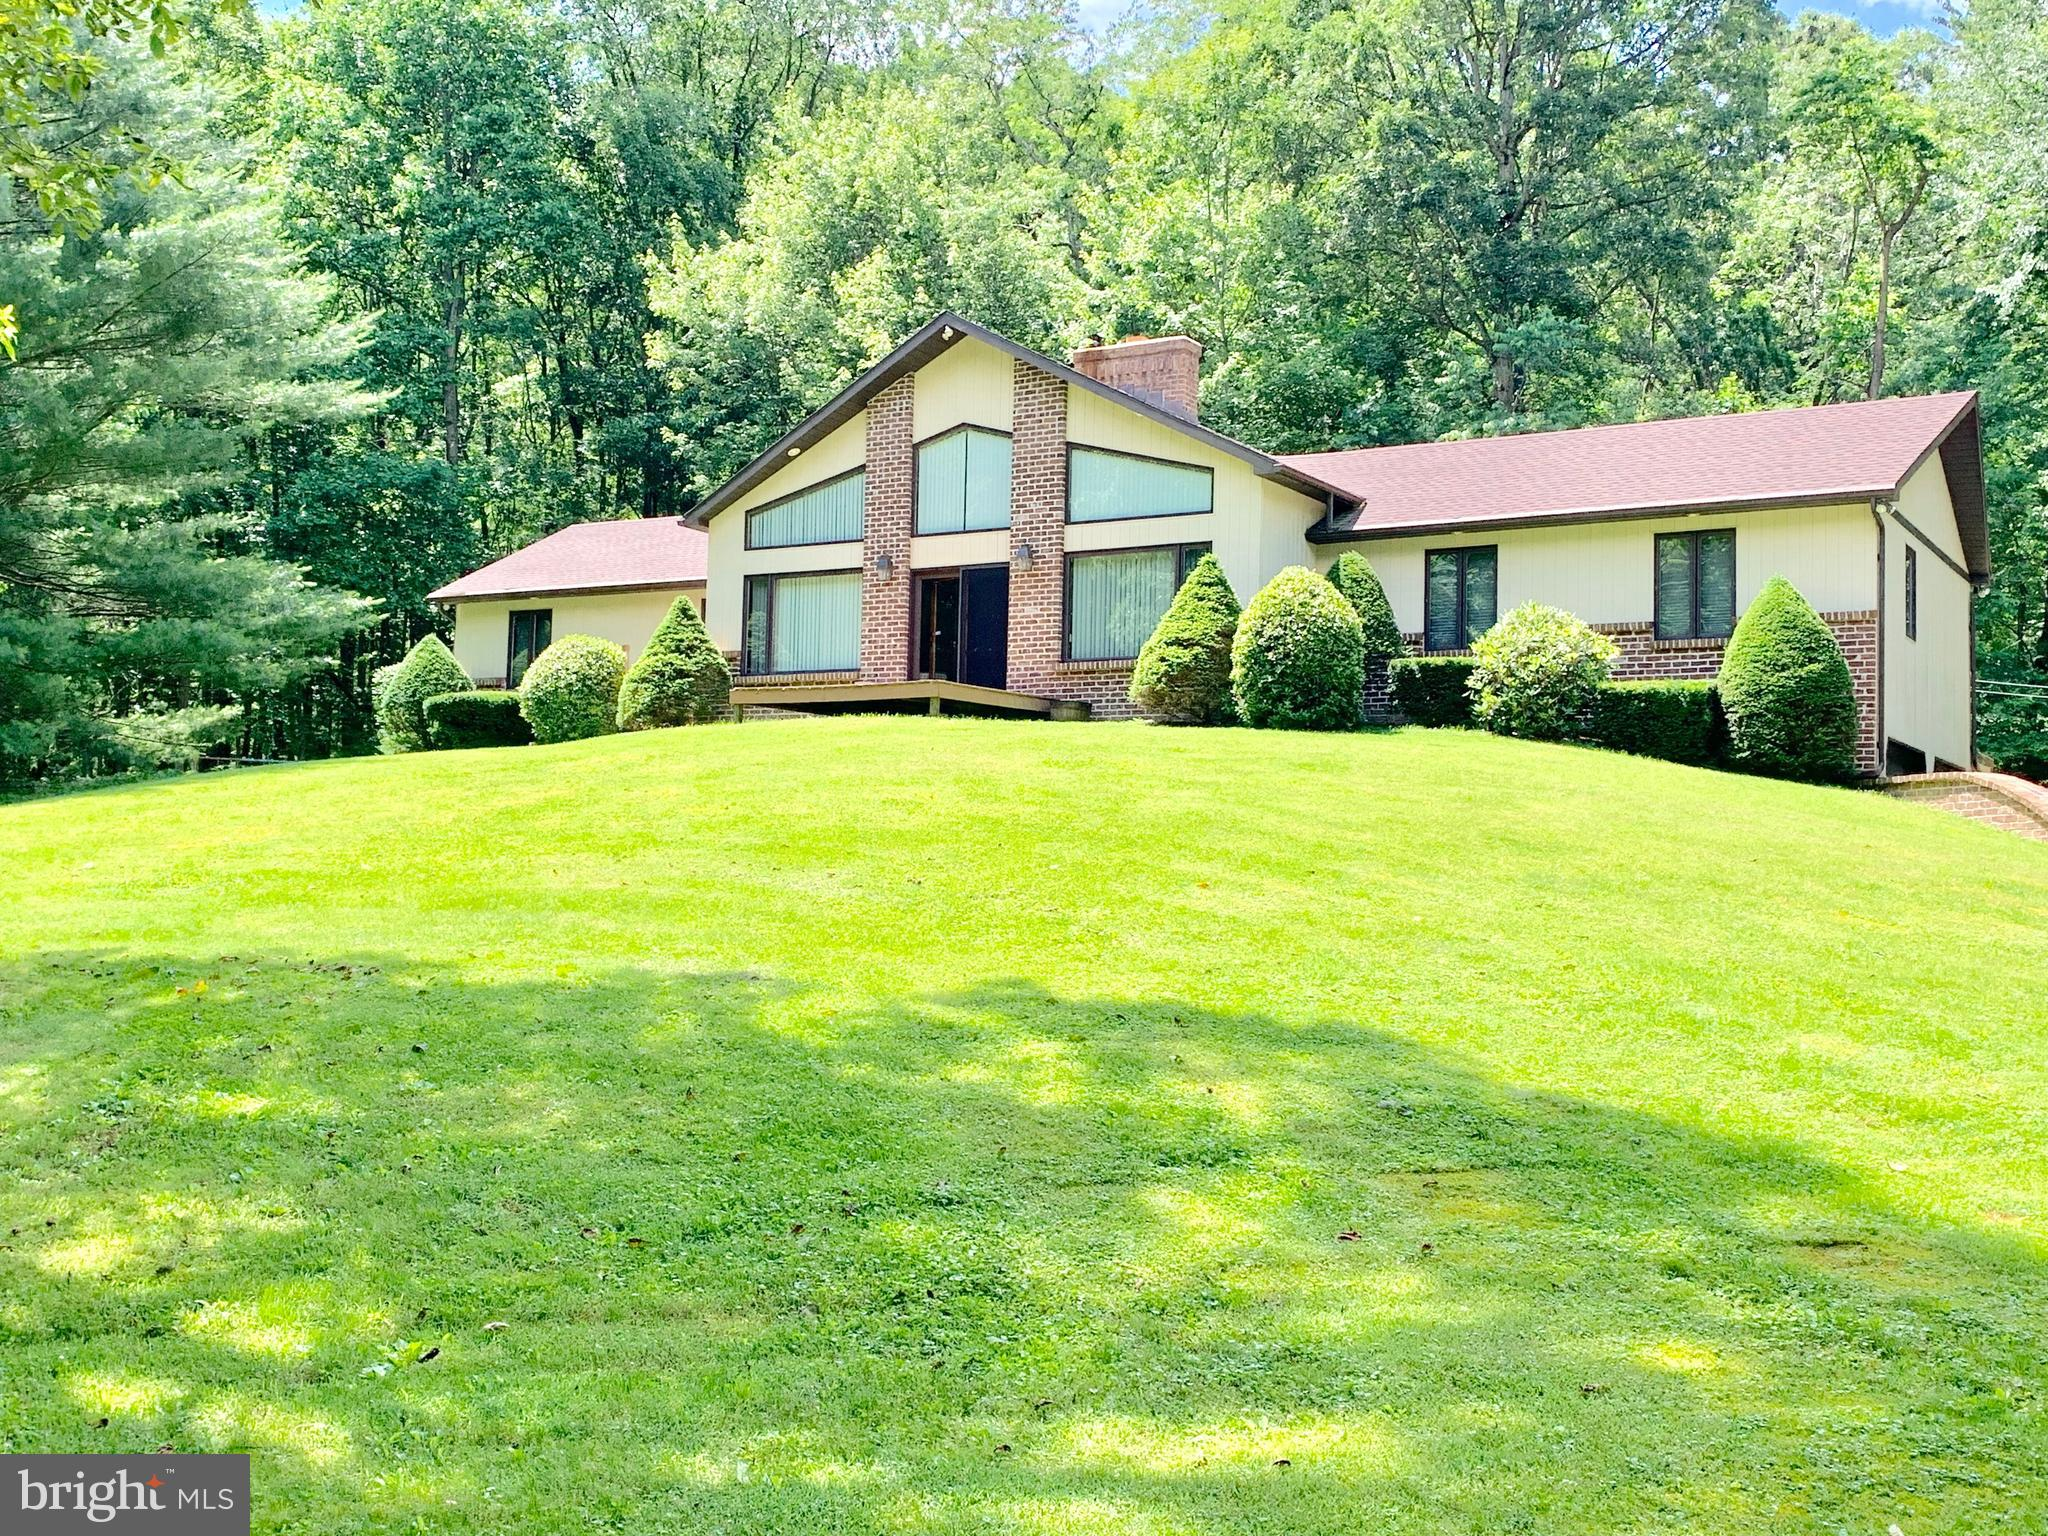 1362 INDIAN PEG ROAD, BOILING SPRINGS, PA 17007